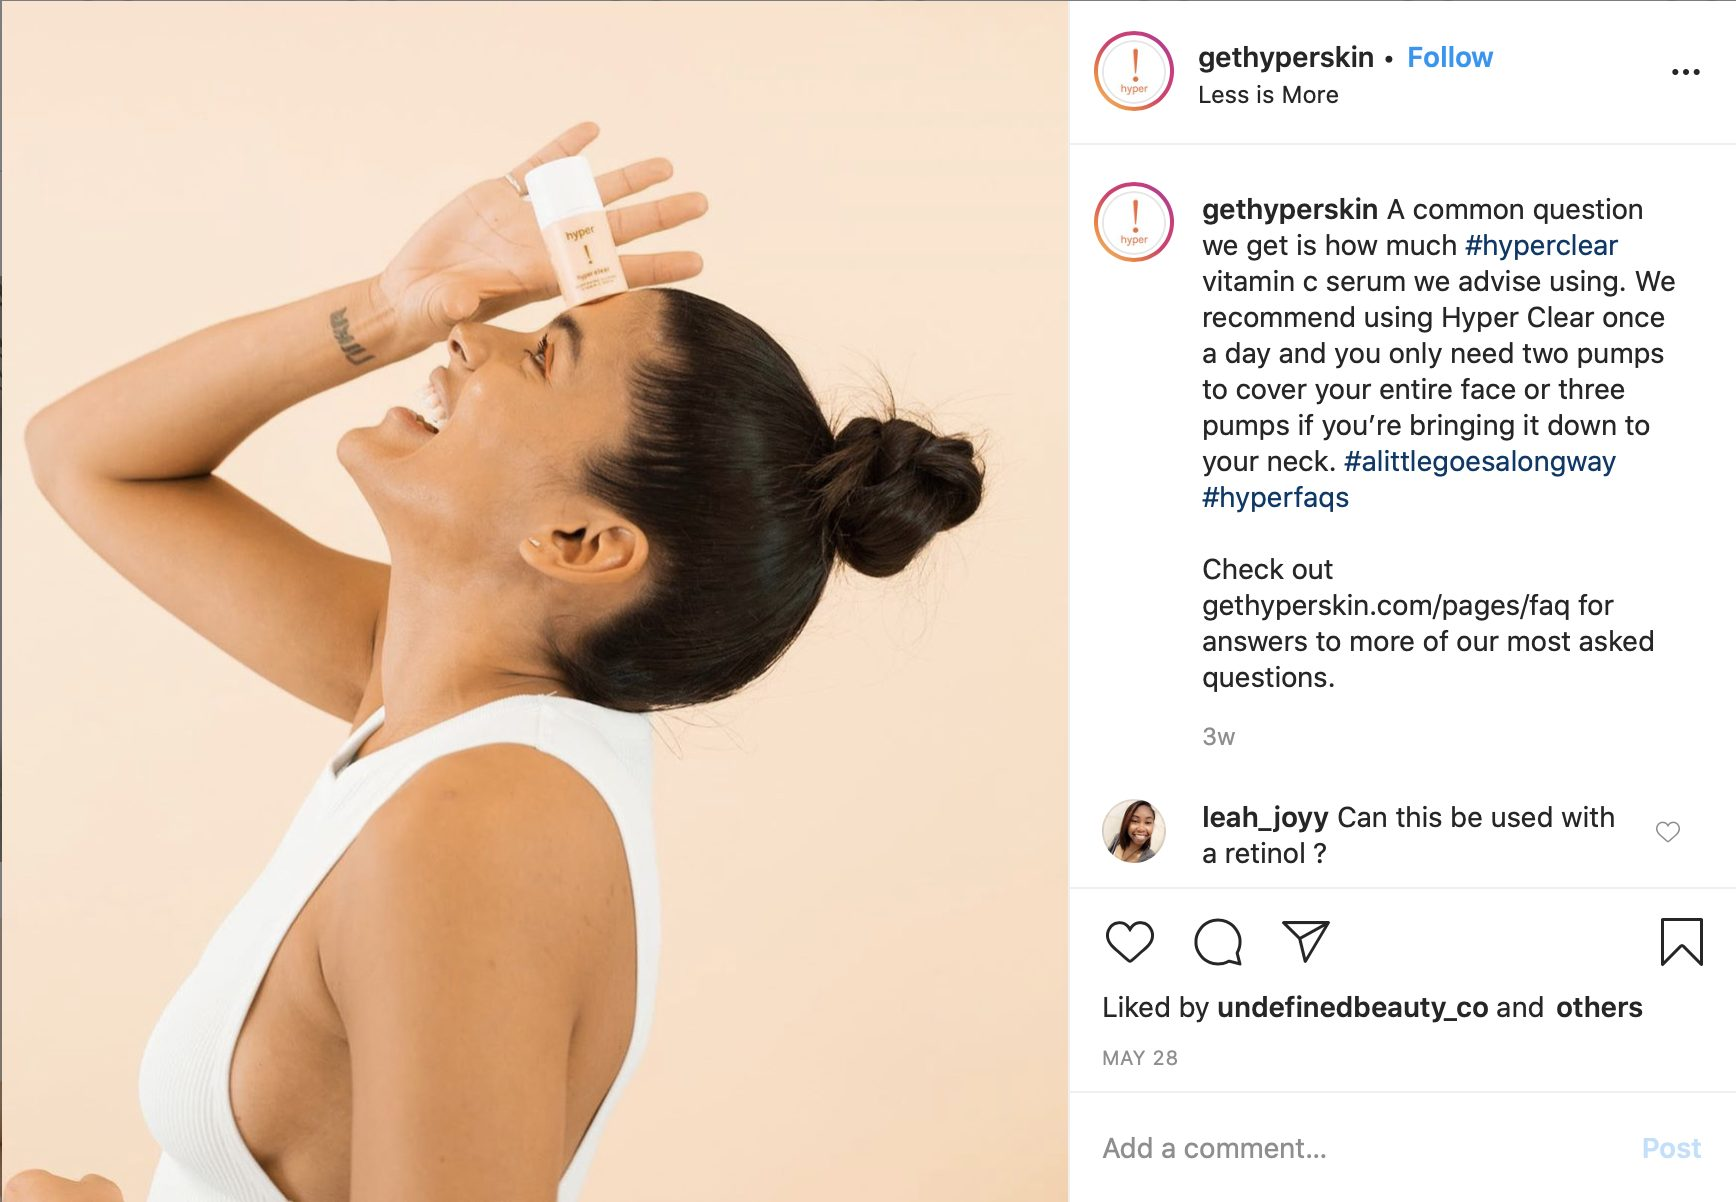 10 Tips to Use Instagram to Get More Leads and Sales